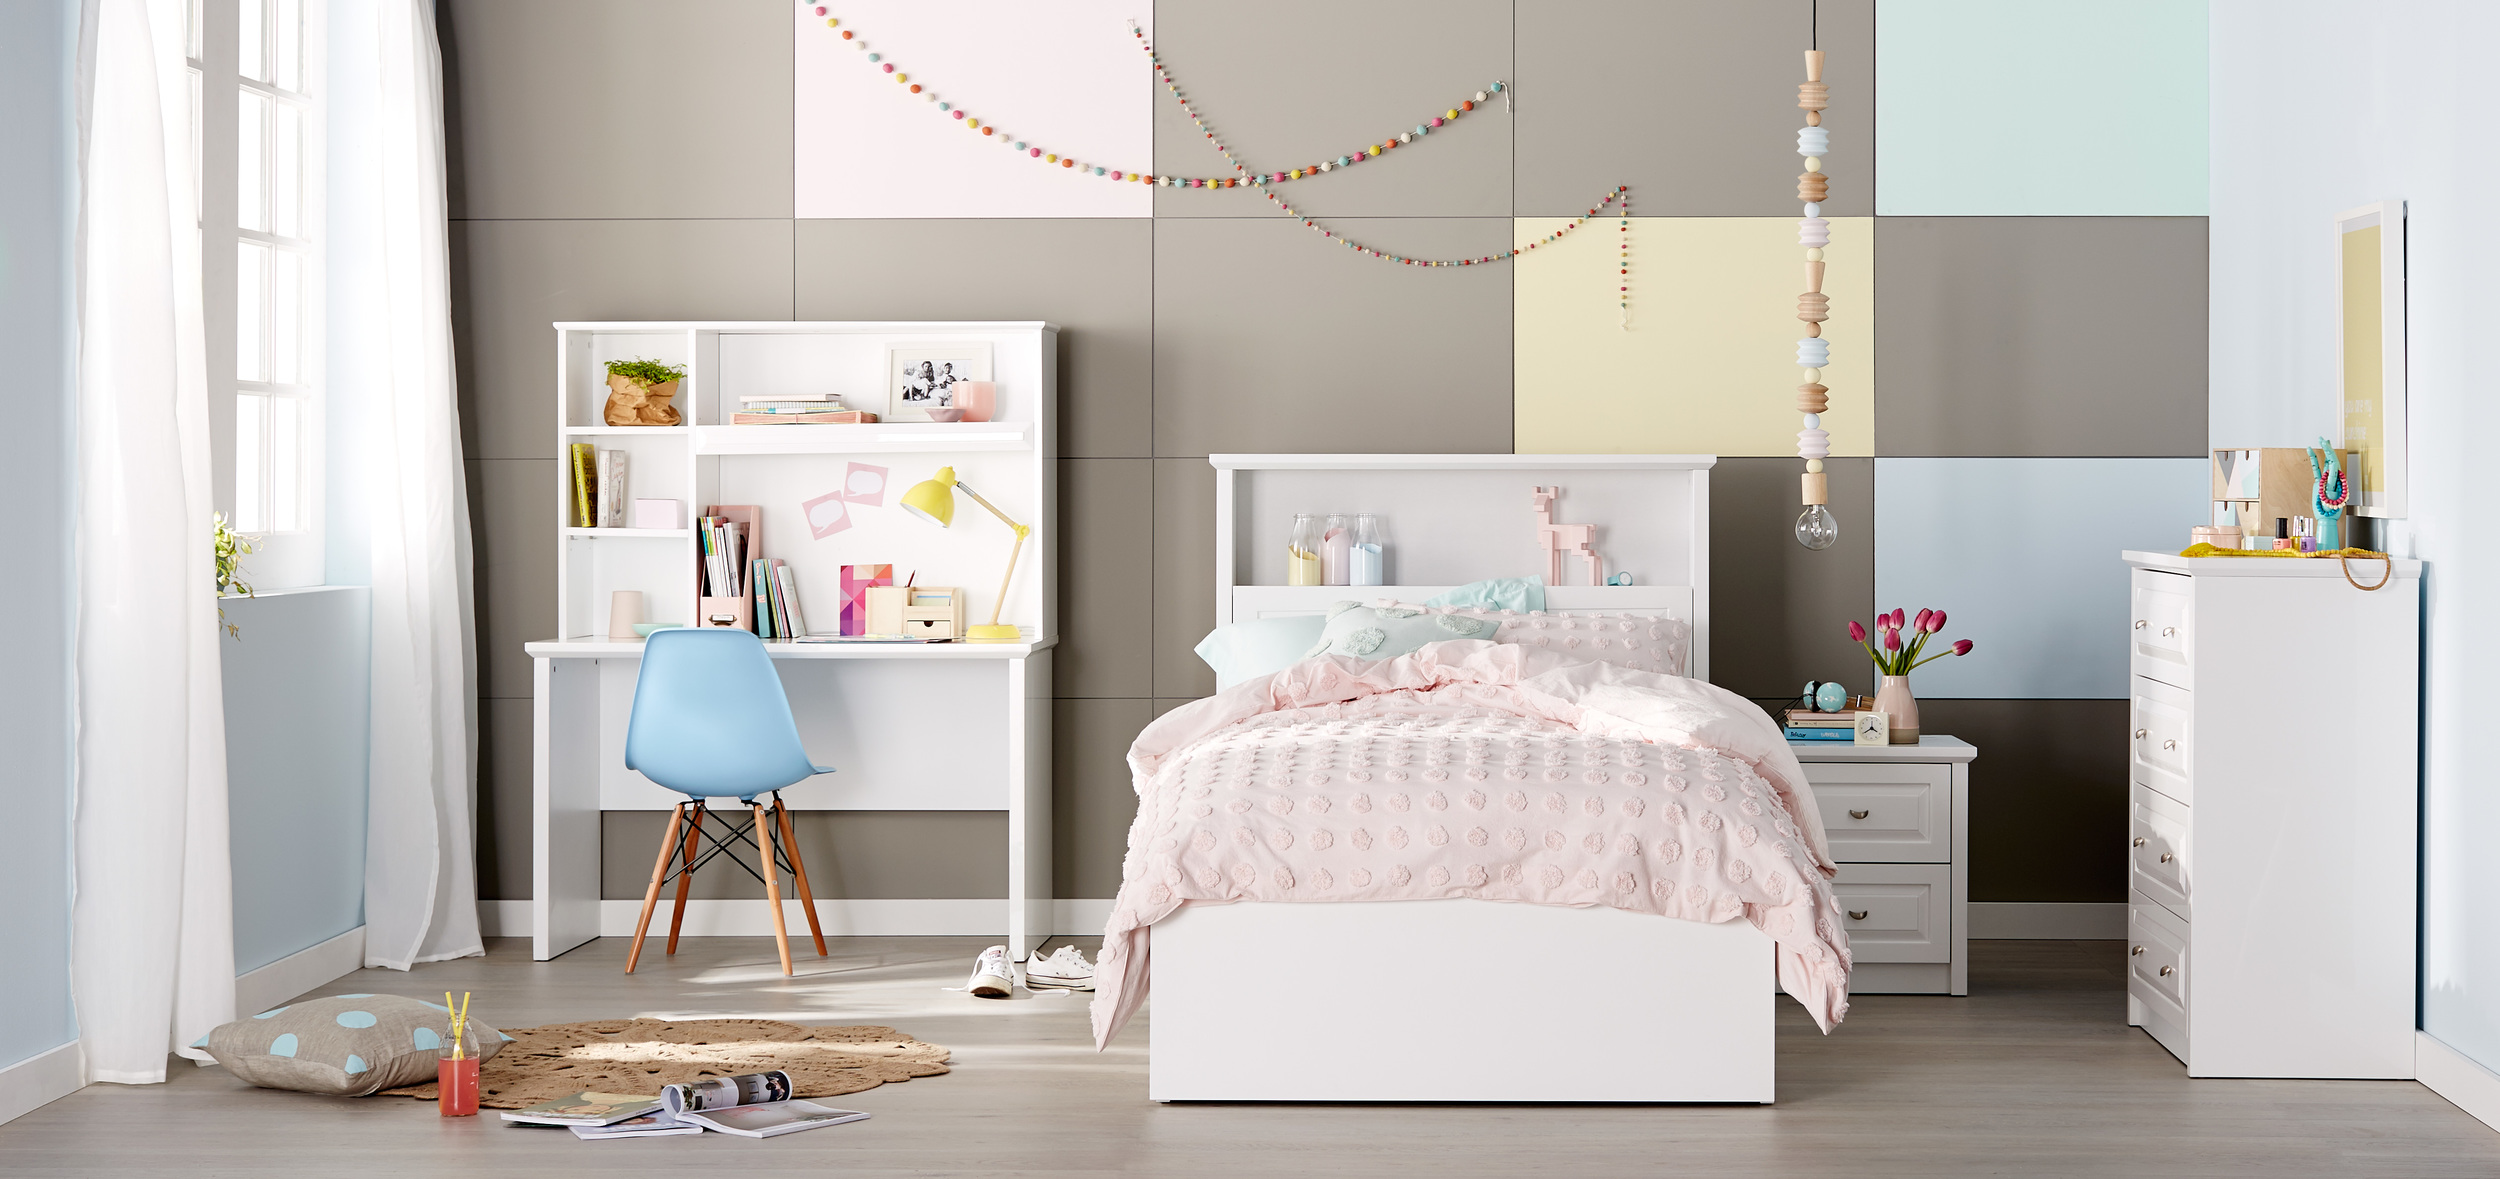 Odyssey  - If you're on the look-out for a teen bed with plenty of storage, then the Odyssey is the one for you, featuring a gas lift base, an in-built bed head nook and an under-bed box to keep those hidden gems tucked away. Odyssey King Single Bed: From RRP $1,249